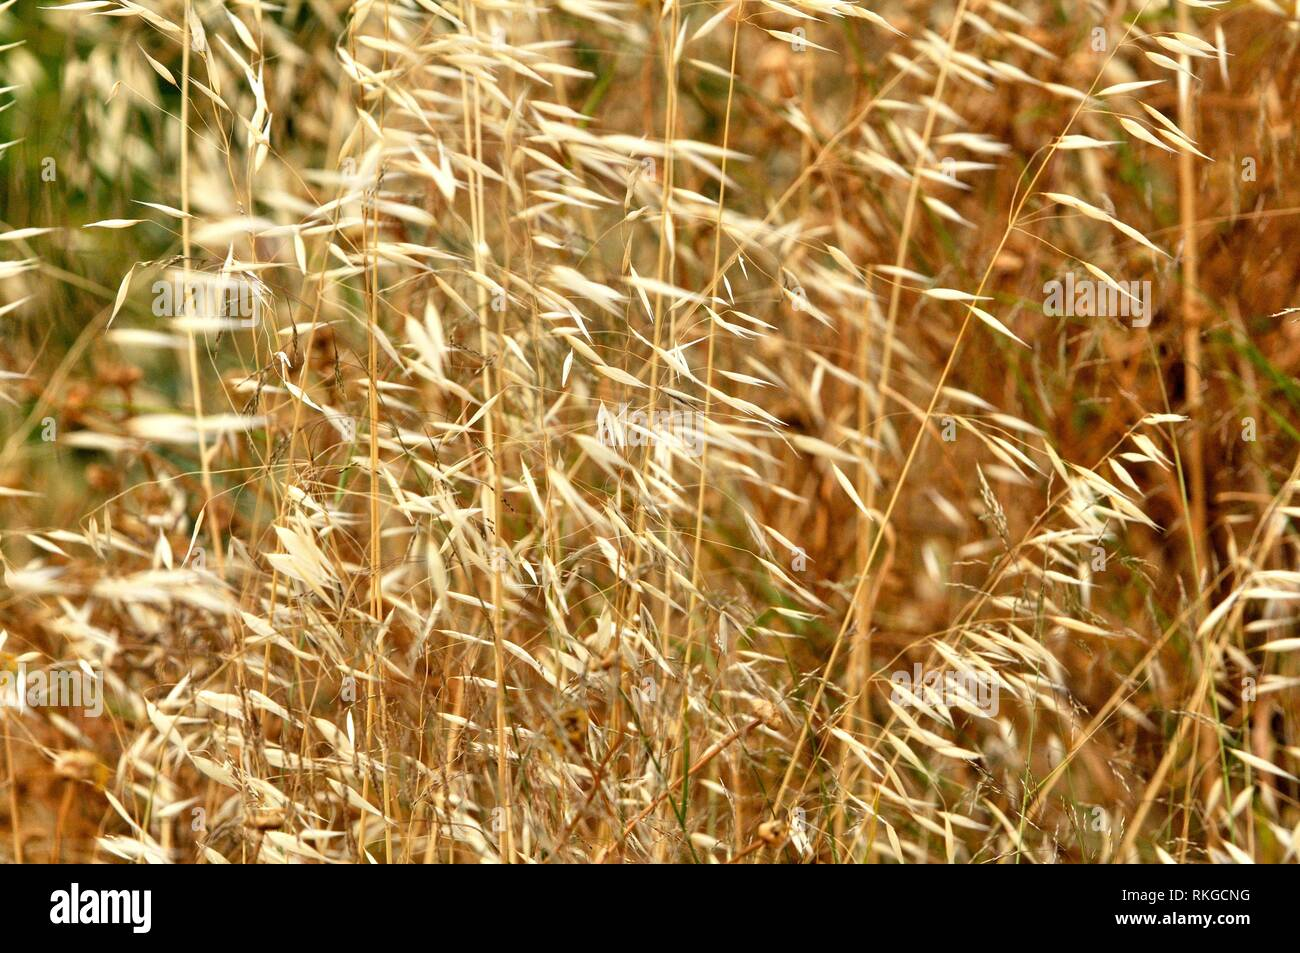 Avena fatua, species of grass in the oat genus. Fam. Poaceae. It is known as the common wild oat. Barcelona, Catalonia, Spain. Stock Photo